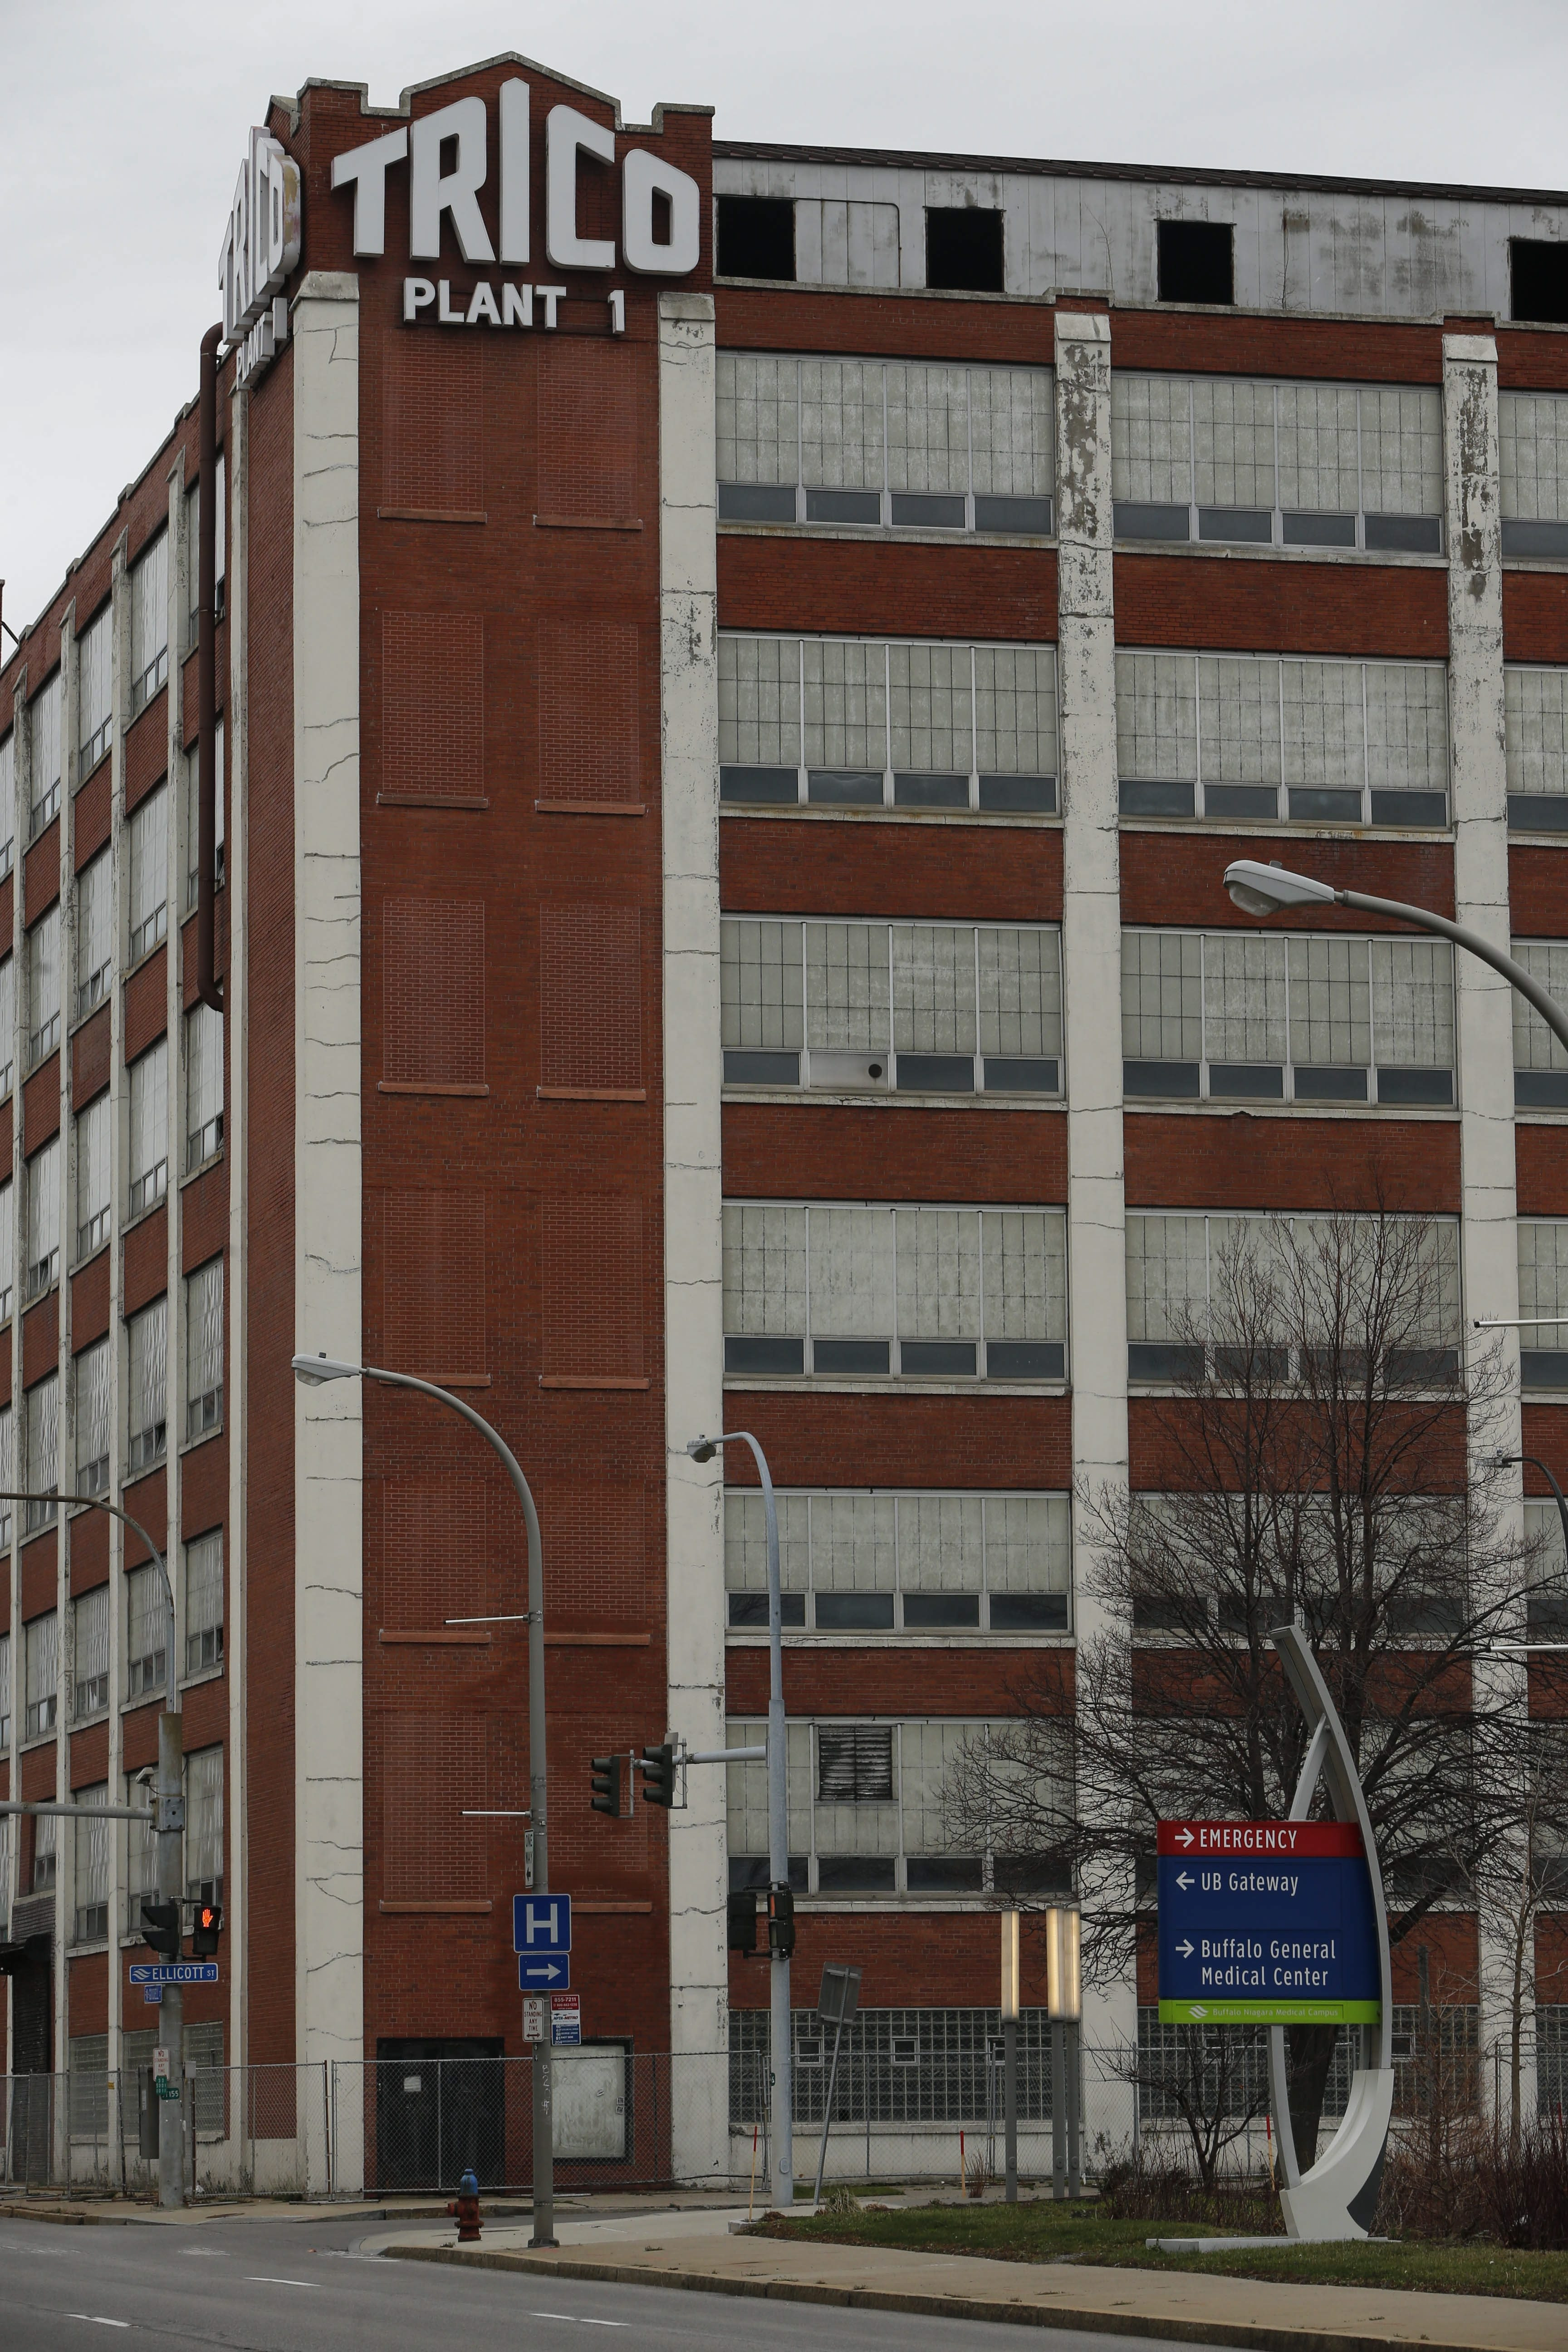 Developer Krog Corp. is seeking tax breaks from the Erie County Industrial Development Agency for its project to redevelop the former Trico Products Corp. building on Washington Street. (Derek Gee/Buffalo News)